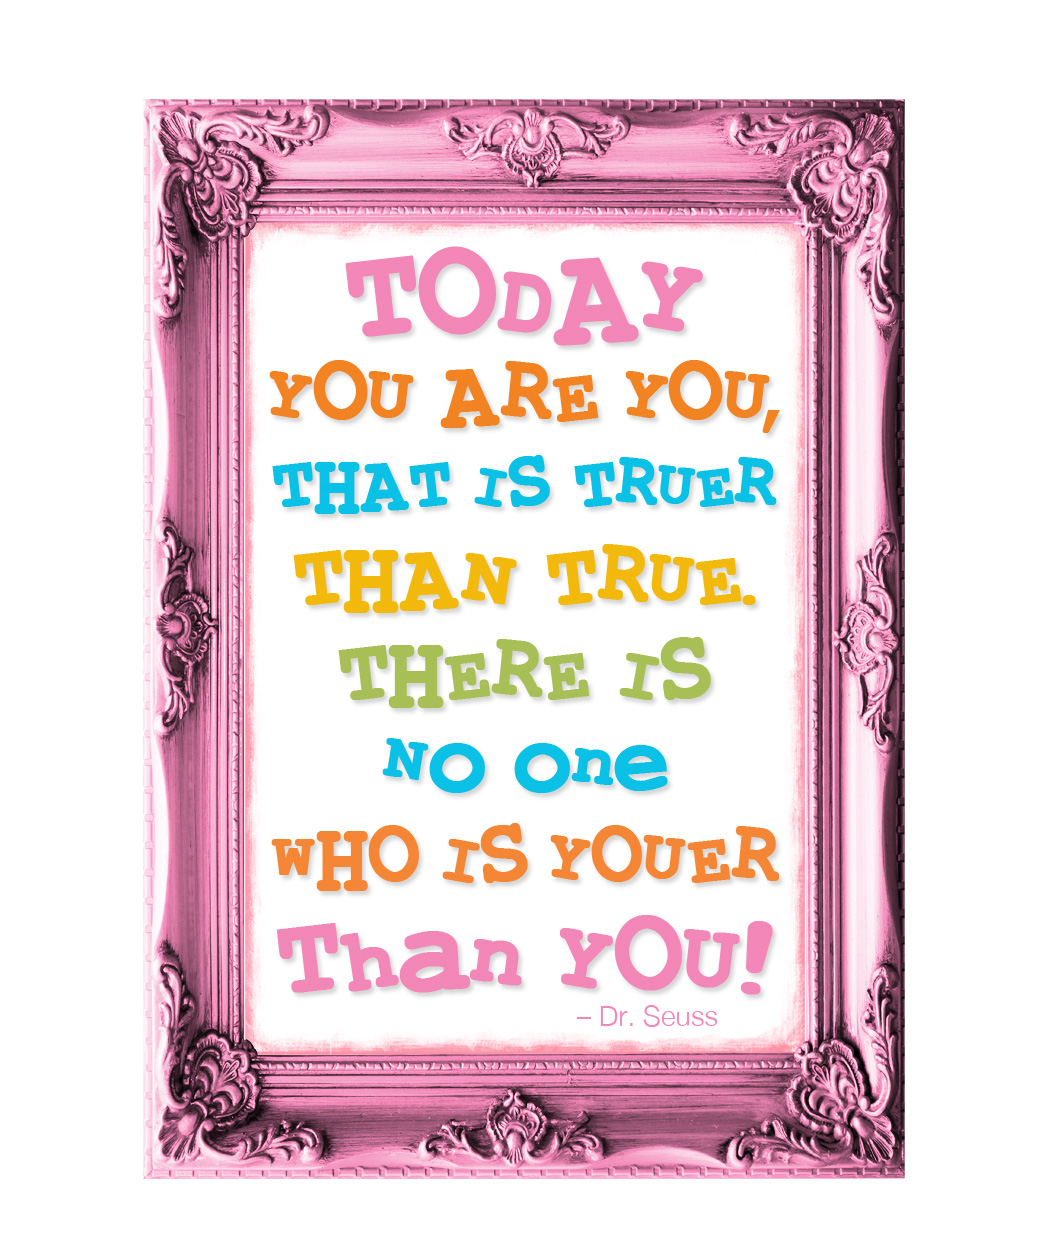 Today You Are You, That Is Truer Than True. There Is No One Who Is Youer Than You!